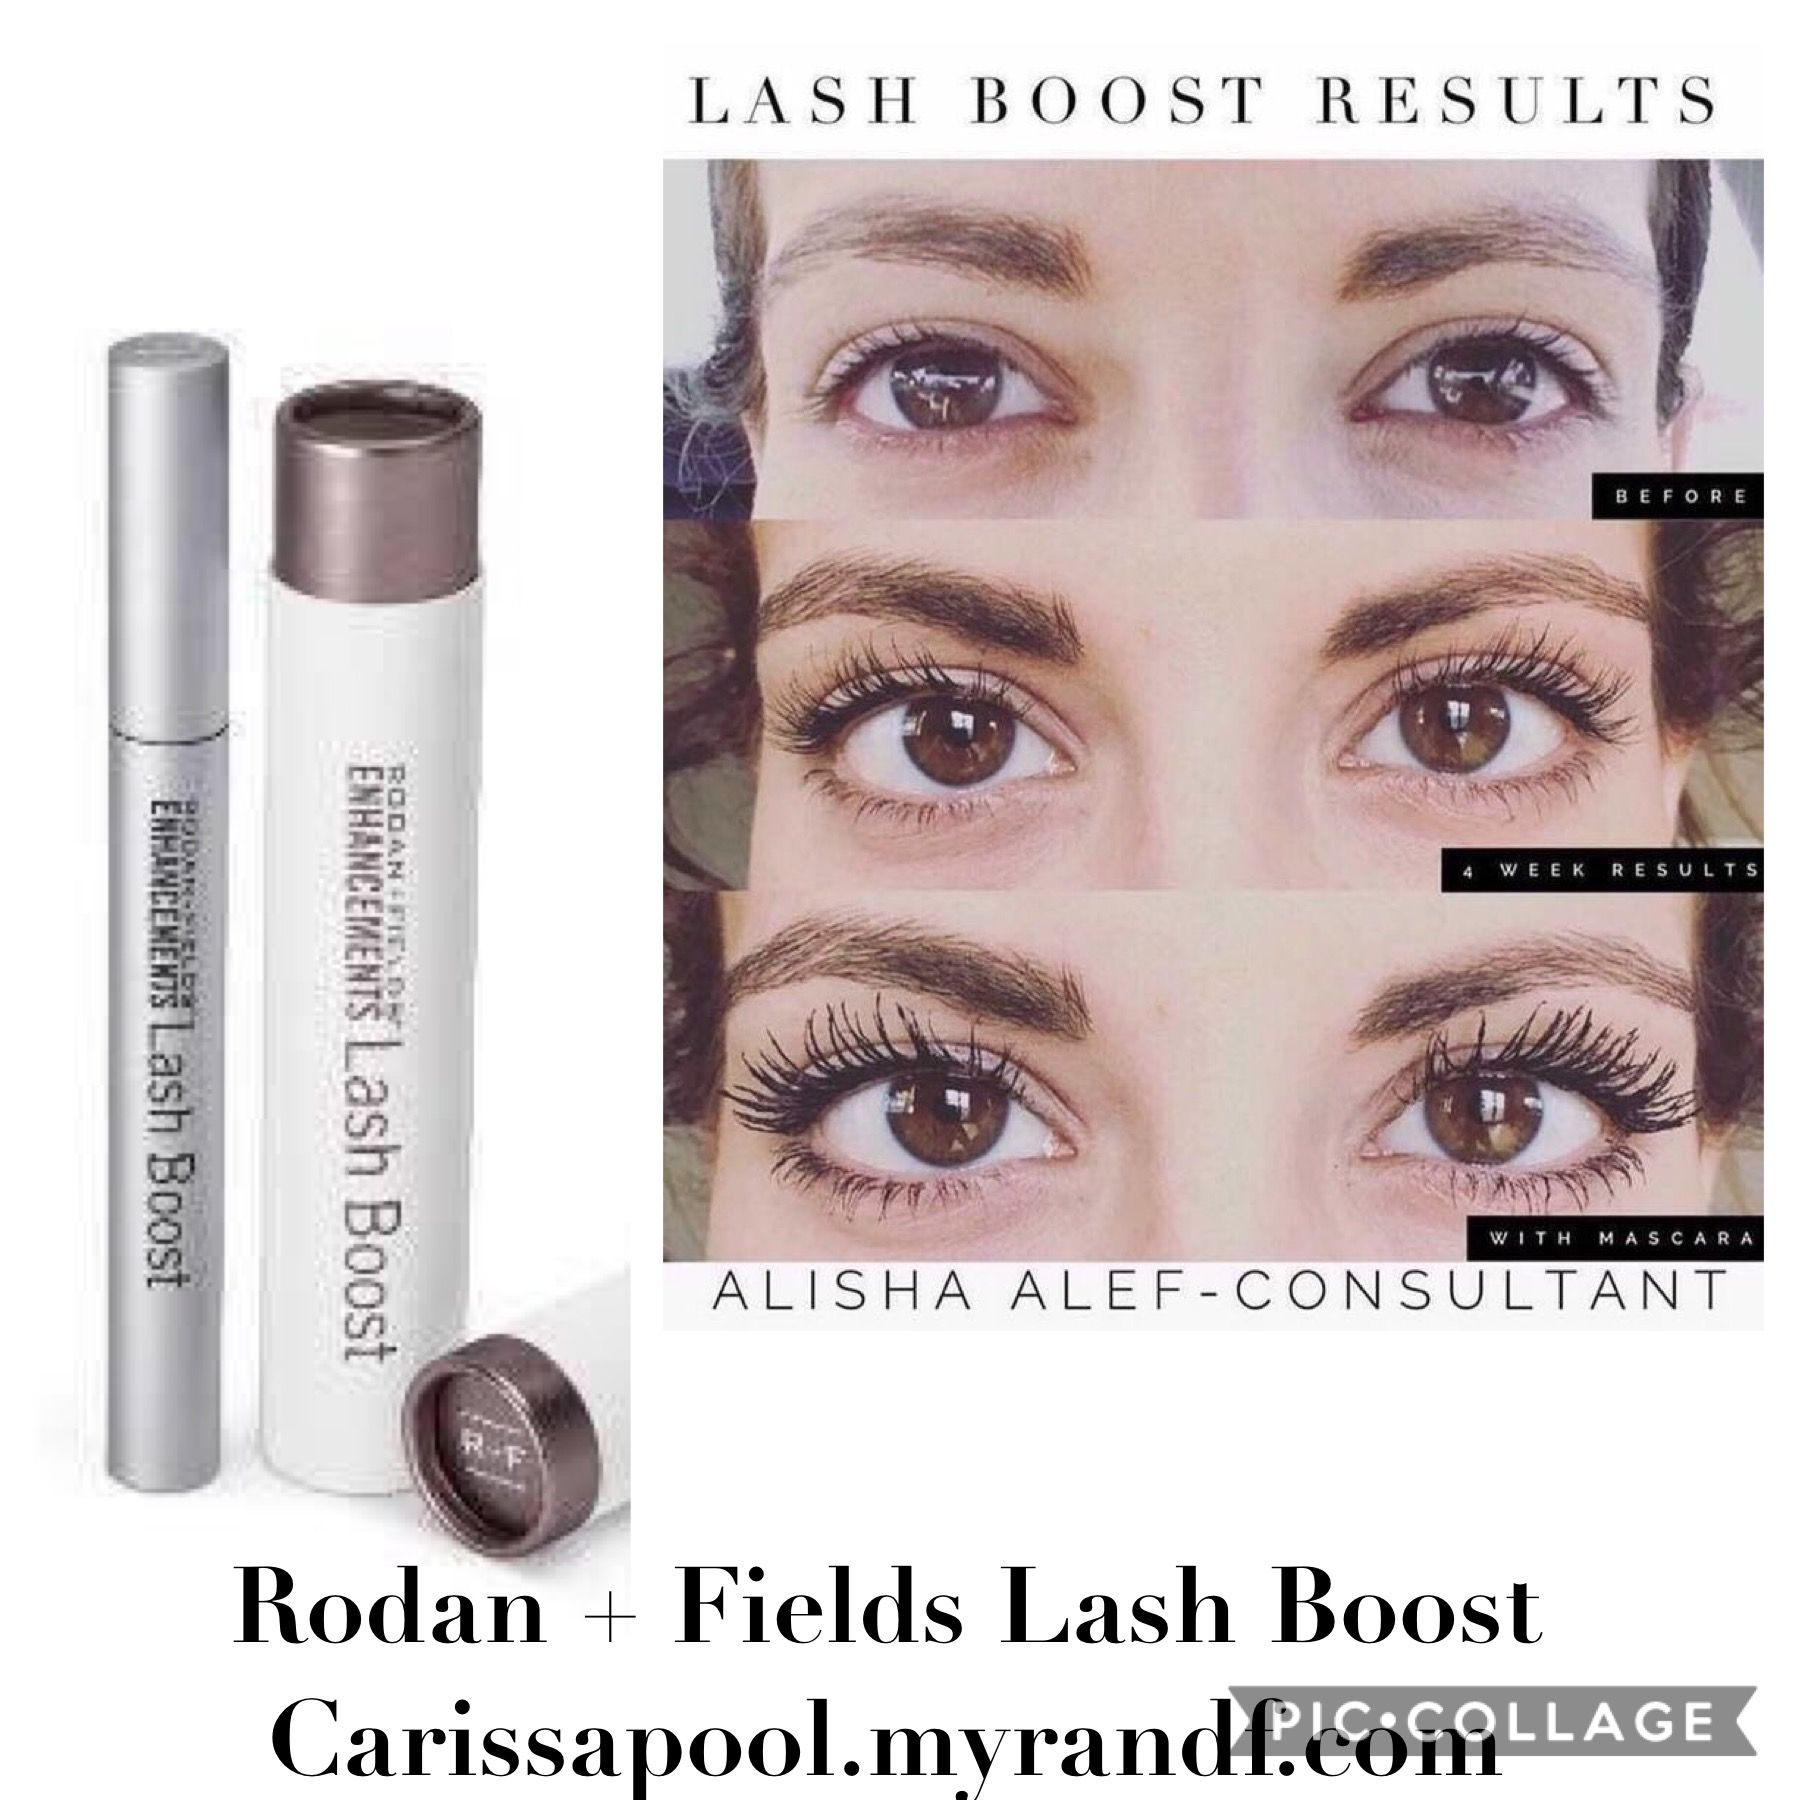 6de8c032f68 I cannot say enough good things about my Rodan + Fields Lash Boost. I had